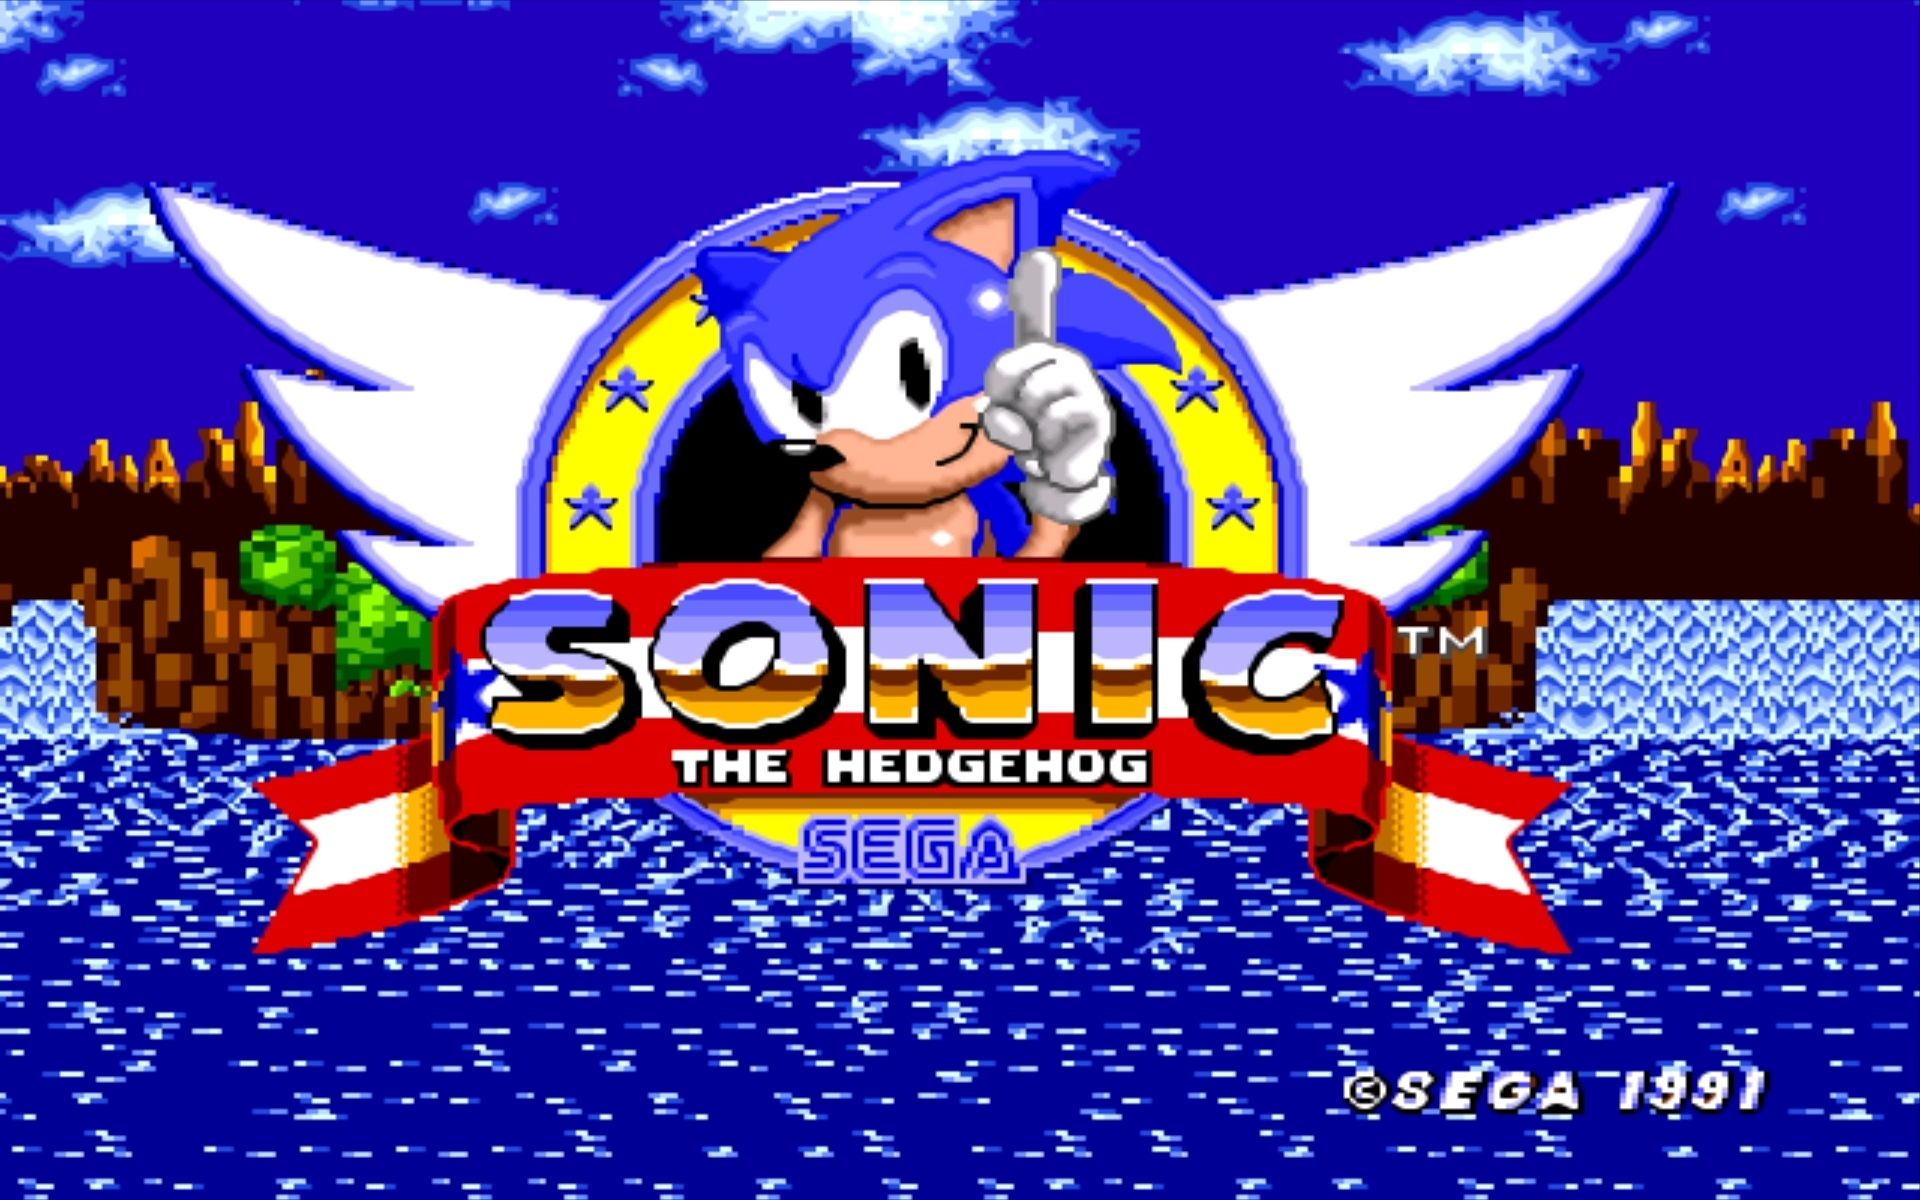 Download 1920x1200 Sonic The Hedgehog Video Games Sega Intended